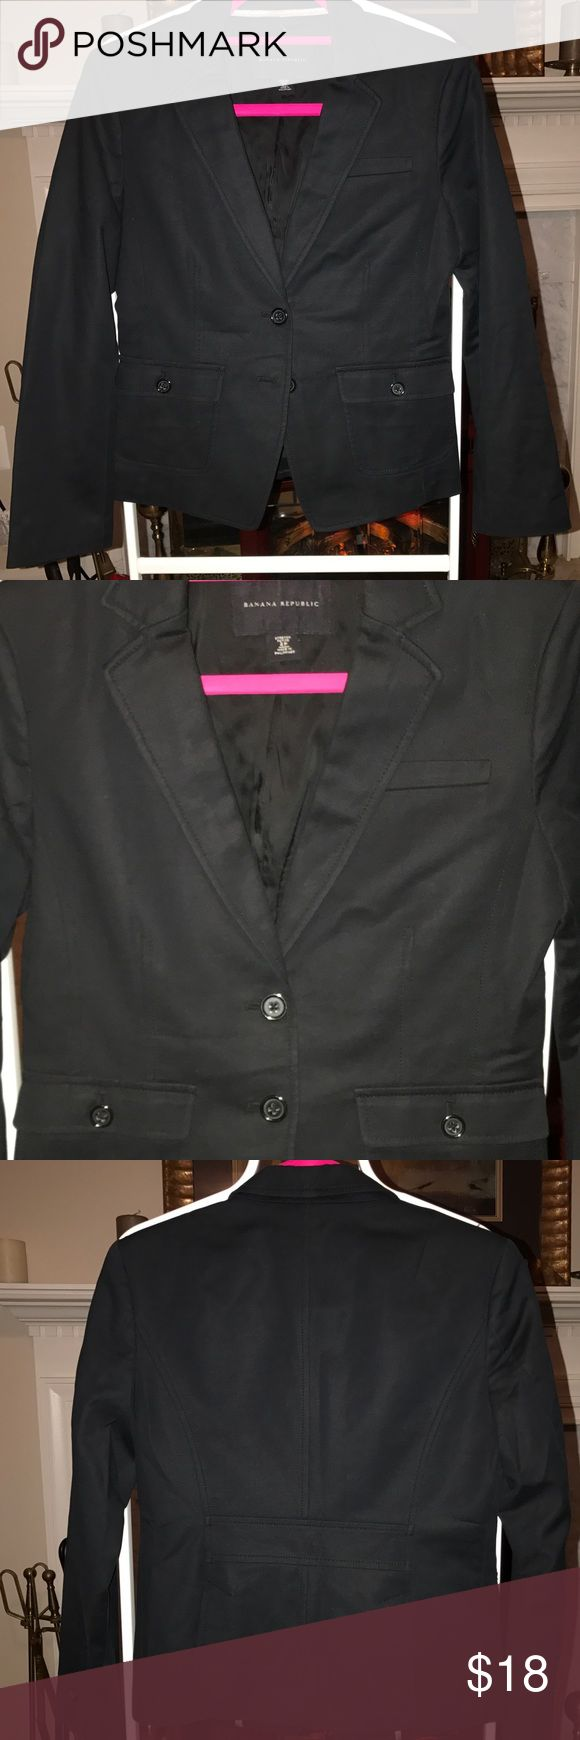 Banana Republic classic Blazer black stretch Sz 4p Banana Republic classic Blazer black stretch Sz 4p. Everyday versatile piece. Great for slacks, skirts, jeans. EUC Banana Republic Jackets & Coats Blazers